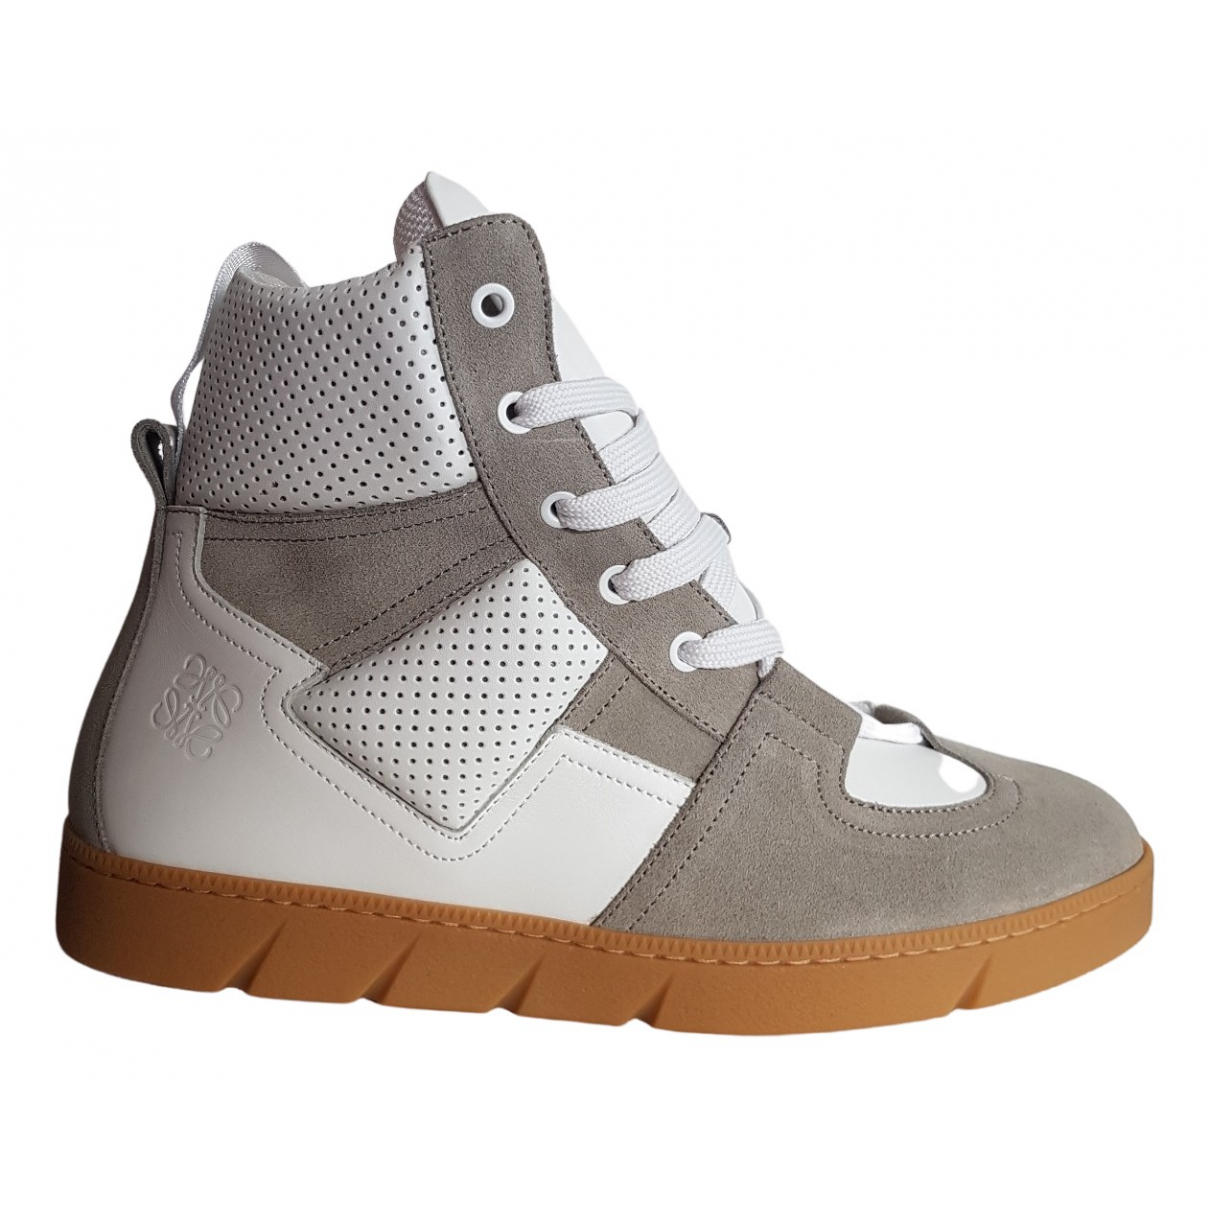 Loewe N White Leather Trainers for Men 41 EU